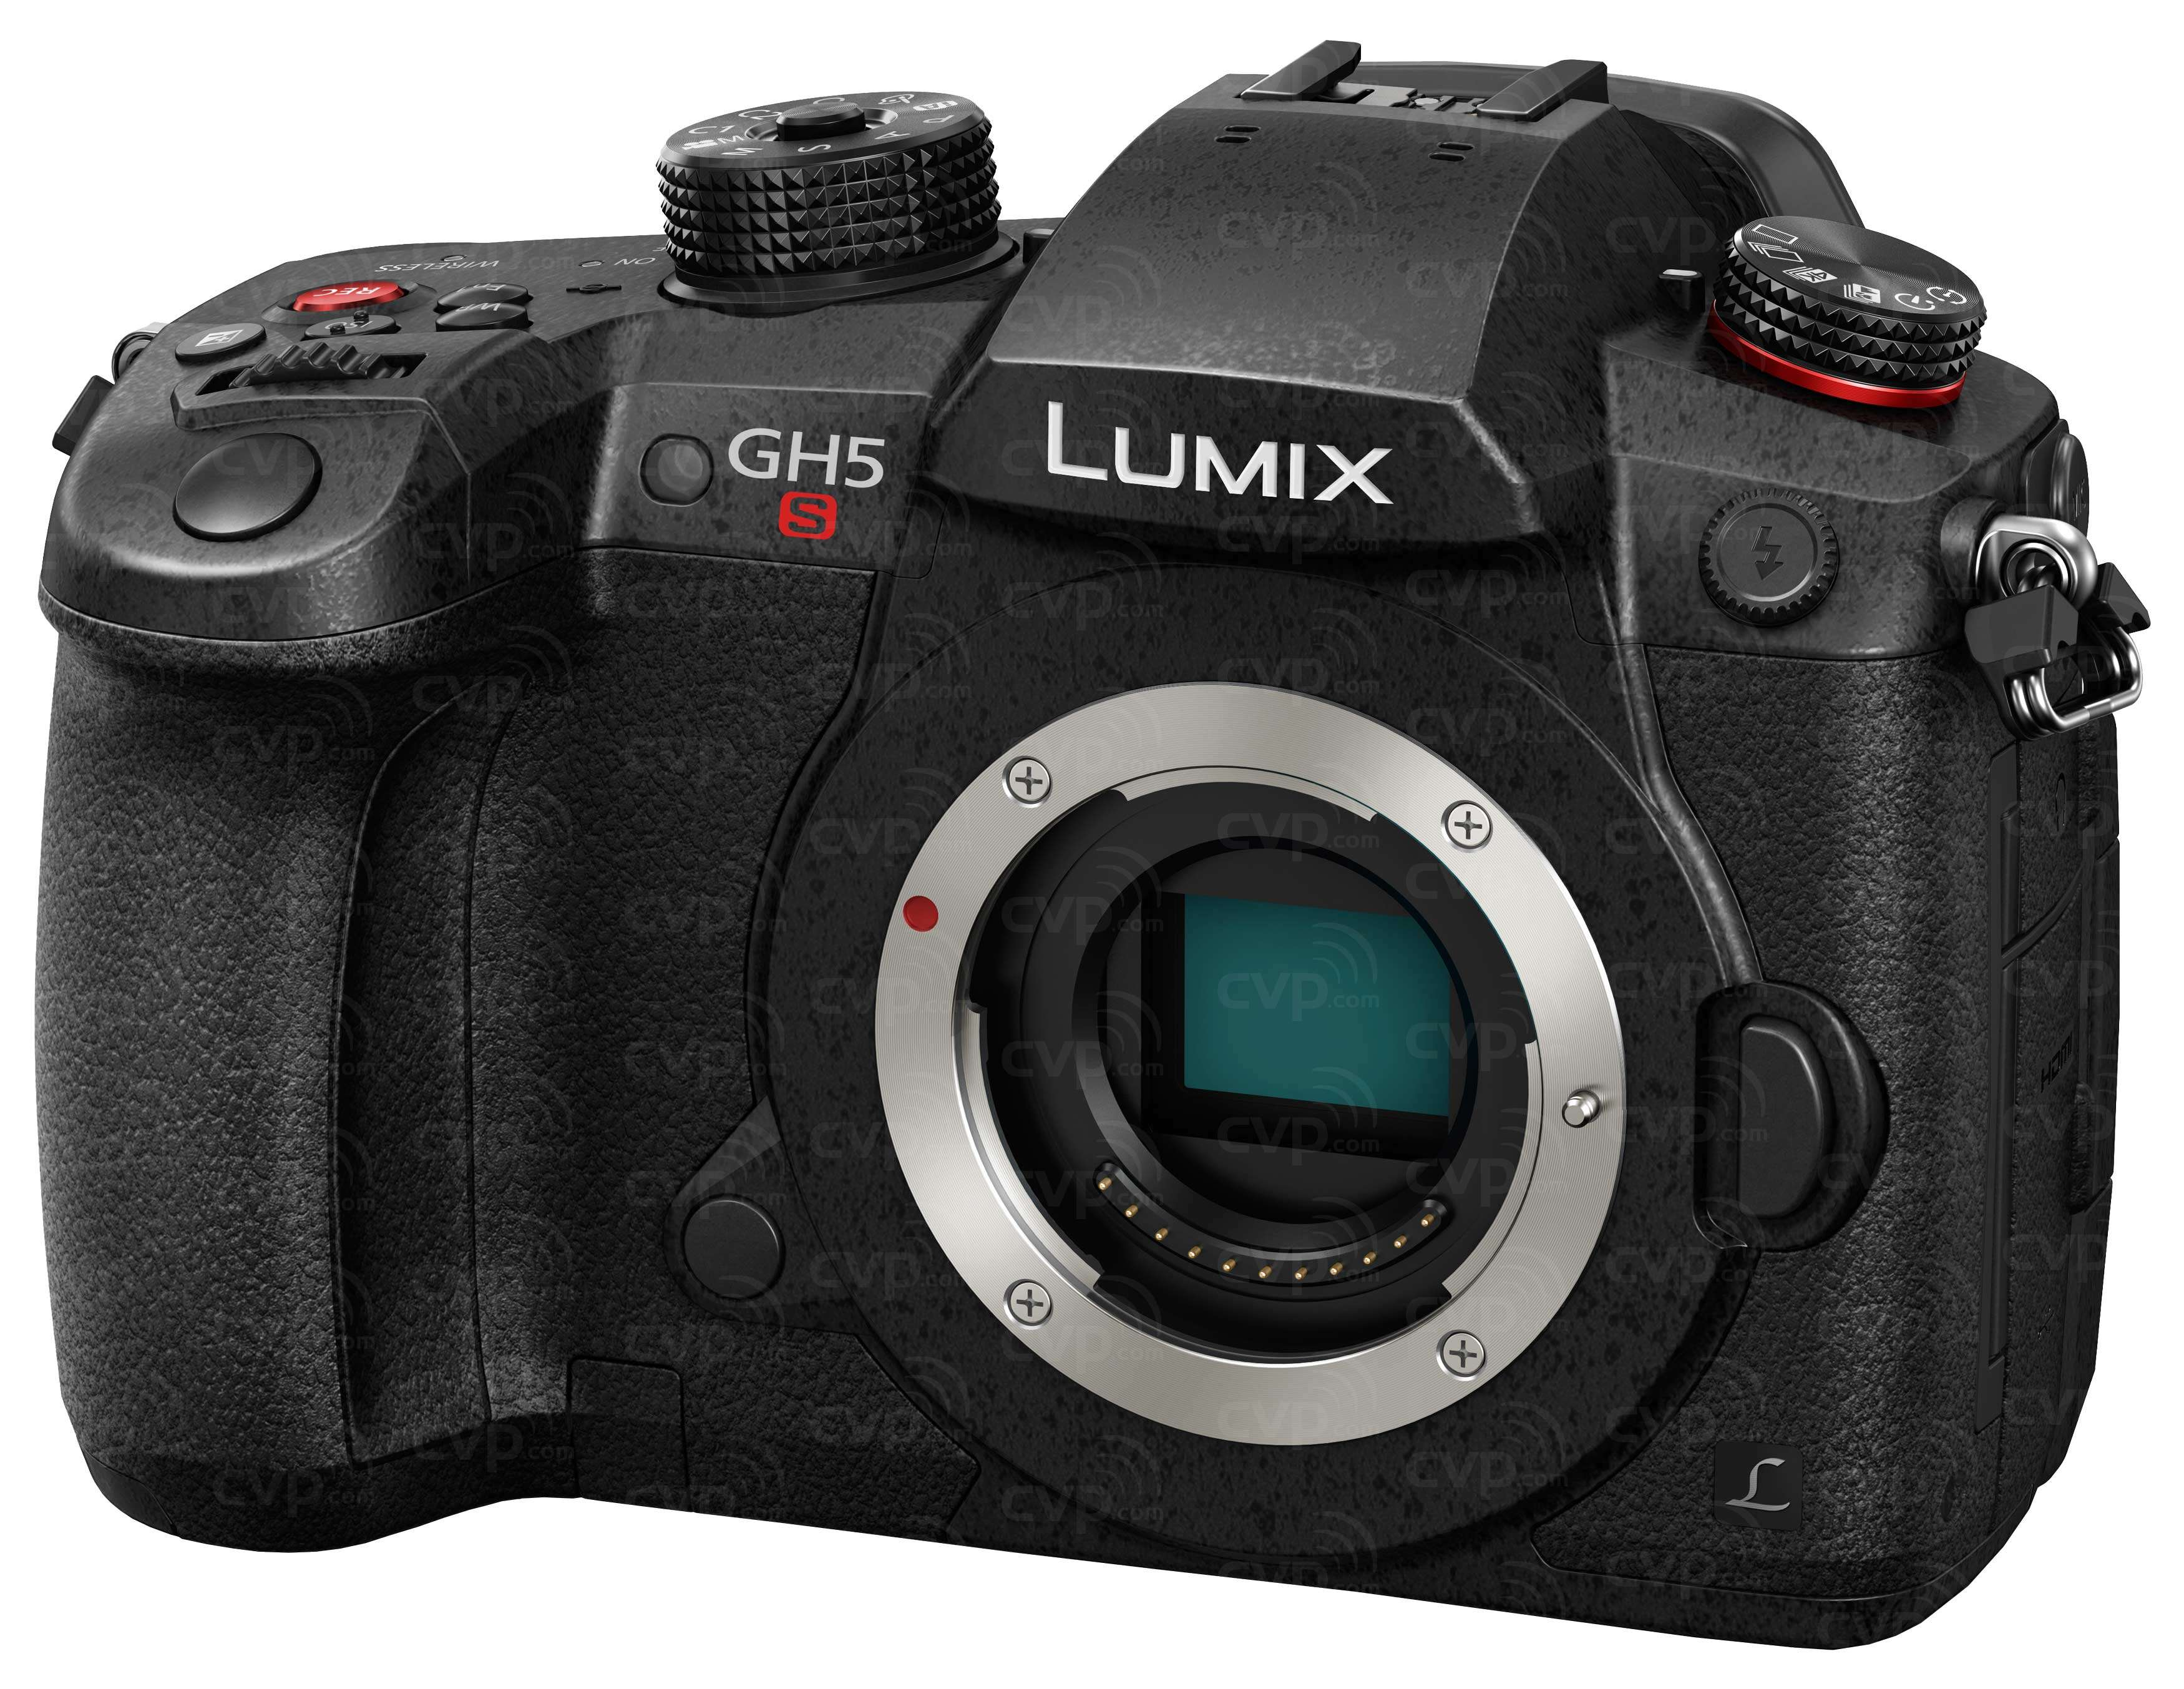 Buy Panasonic Gh5s Lumix Dc 102mp Digital Single Mirrorless 3 Way Switch Compact System Camera Body Only